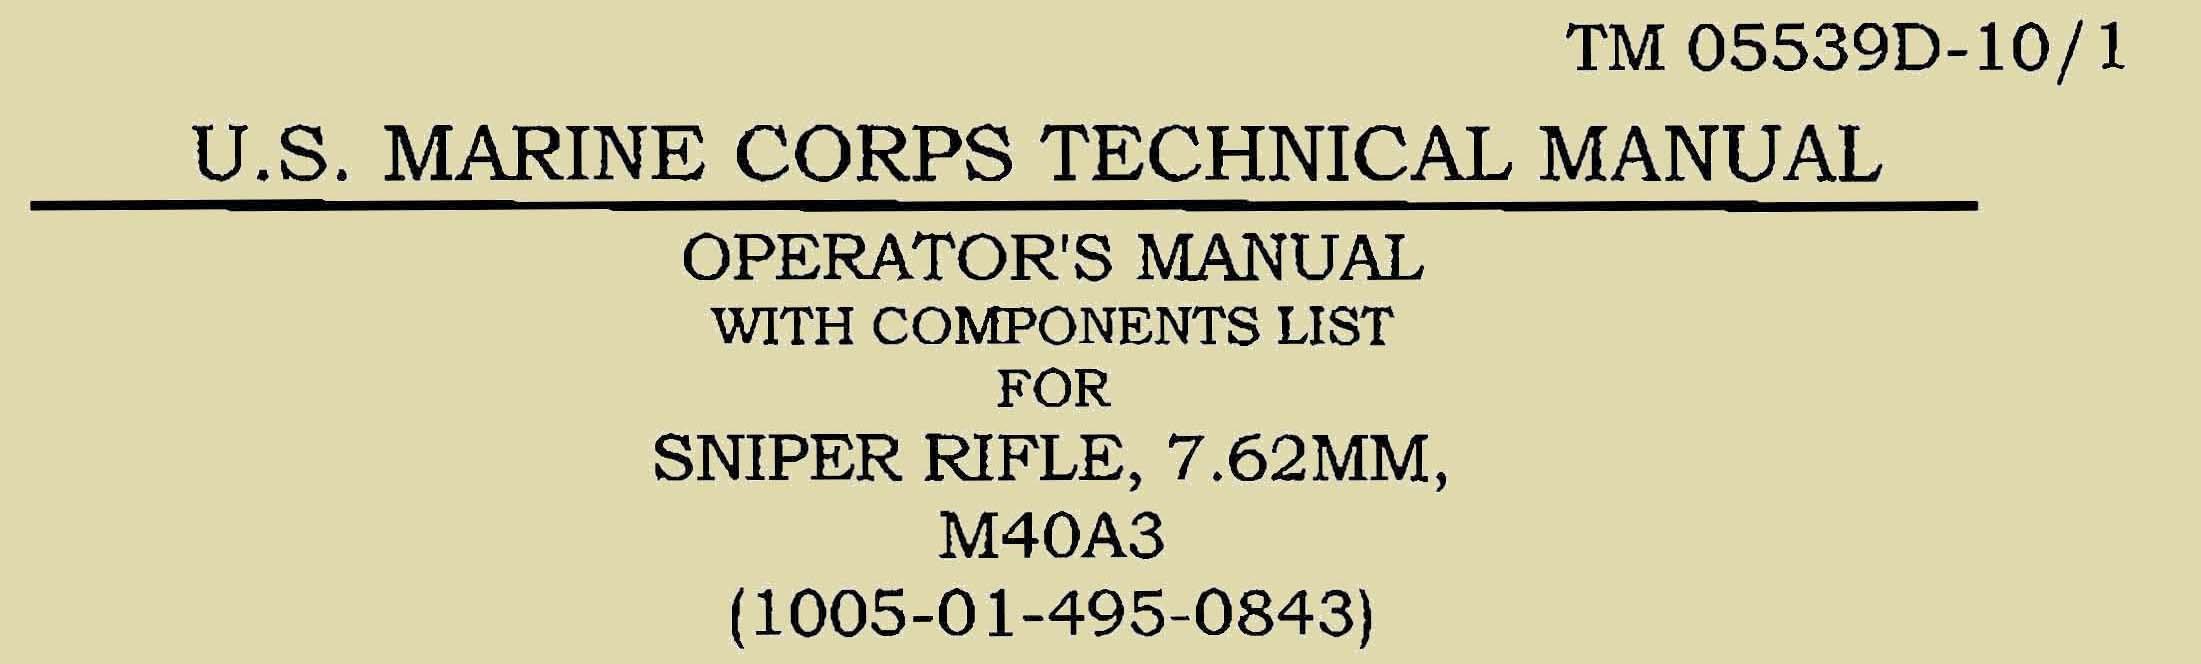 Sniper Rifle Model 7.62mm M40A3 TM 05539D-10-1 Technical Manual